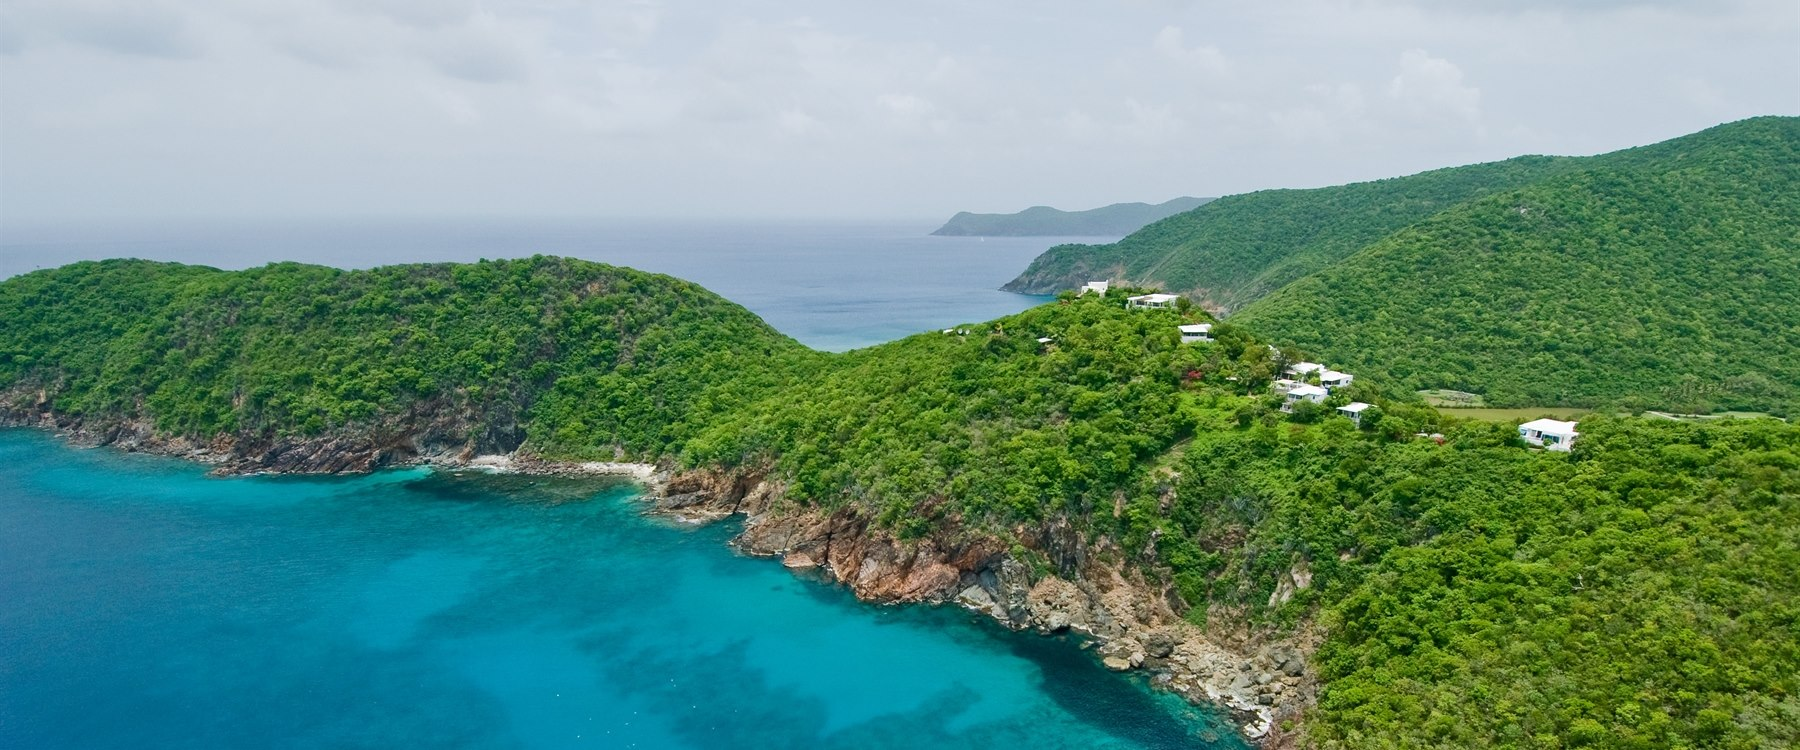 Stunning shot of Guana Island, British Virgin Islands